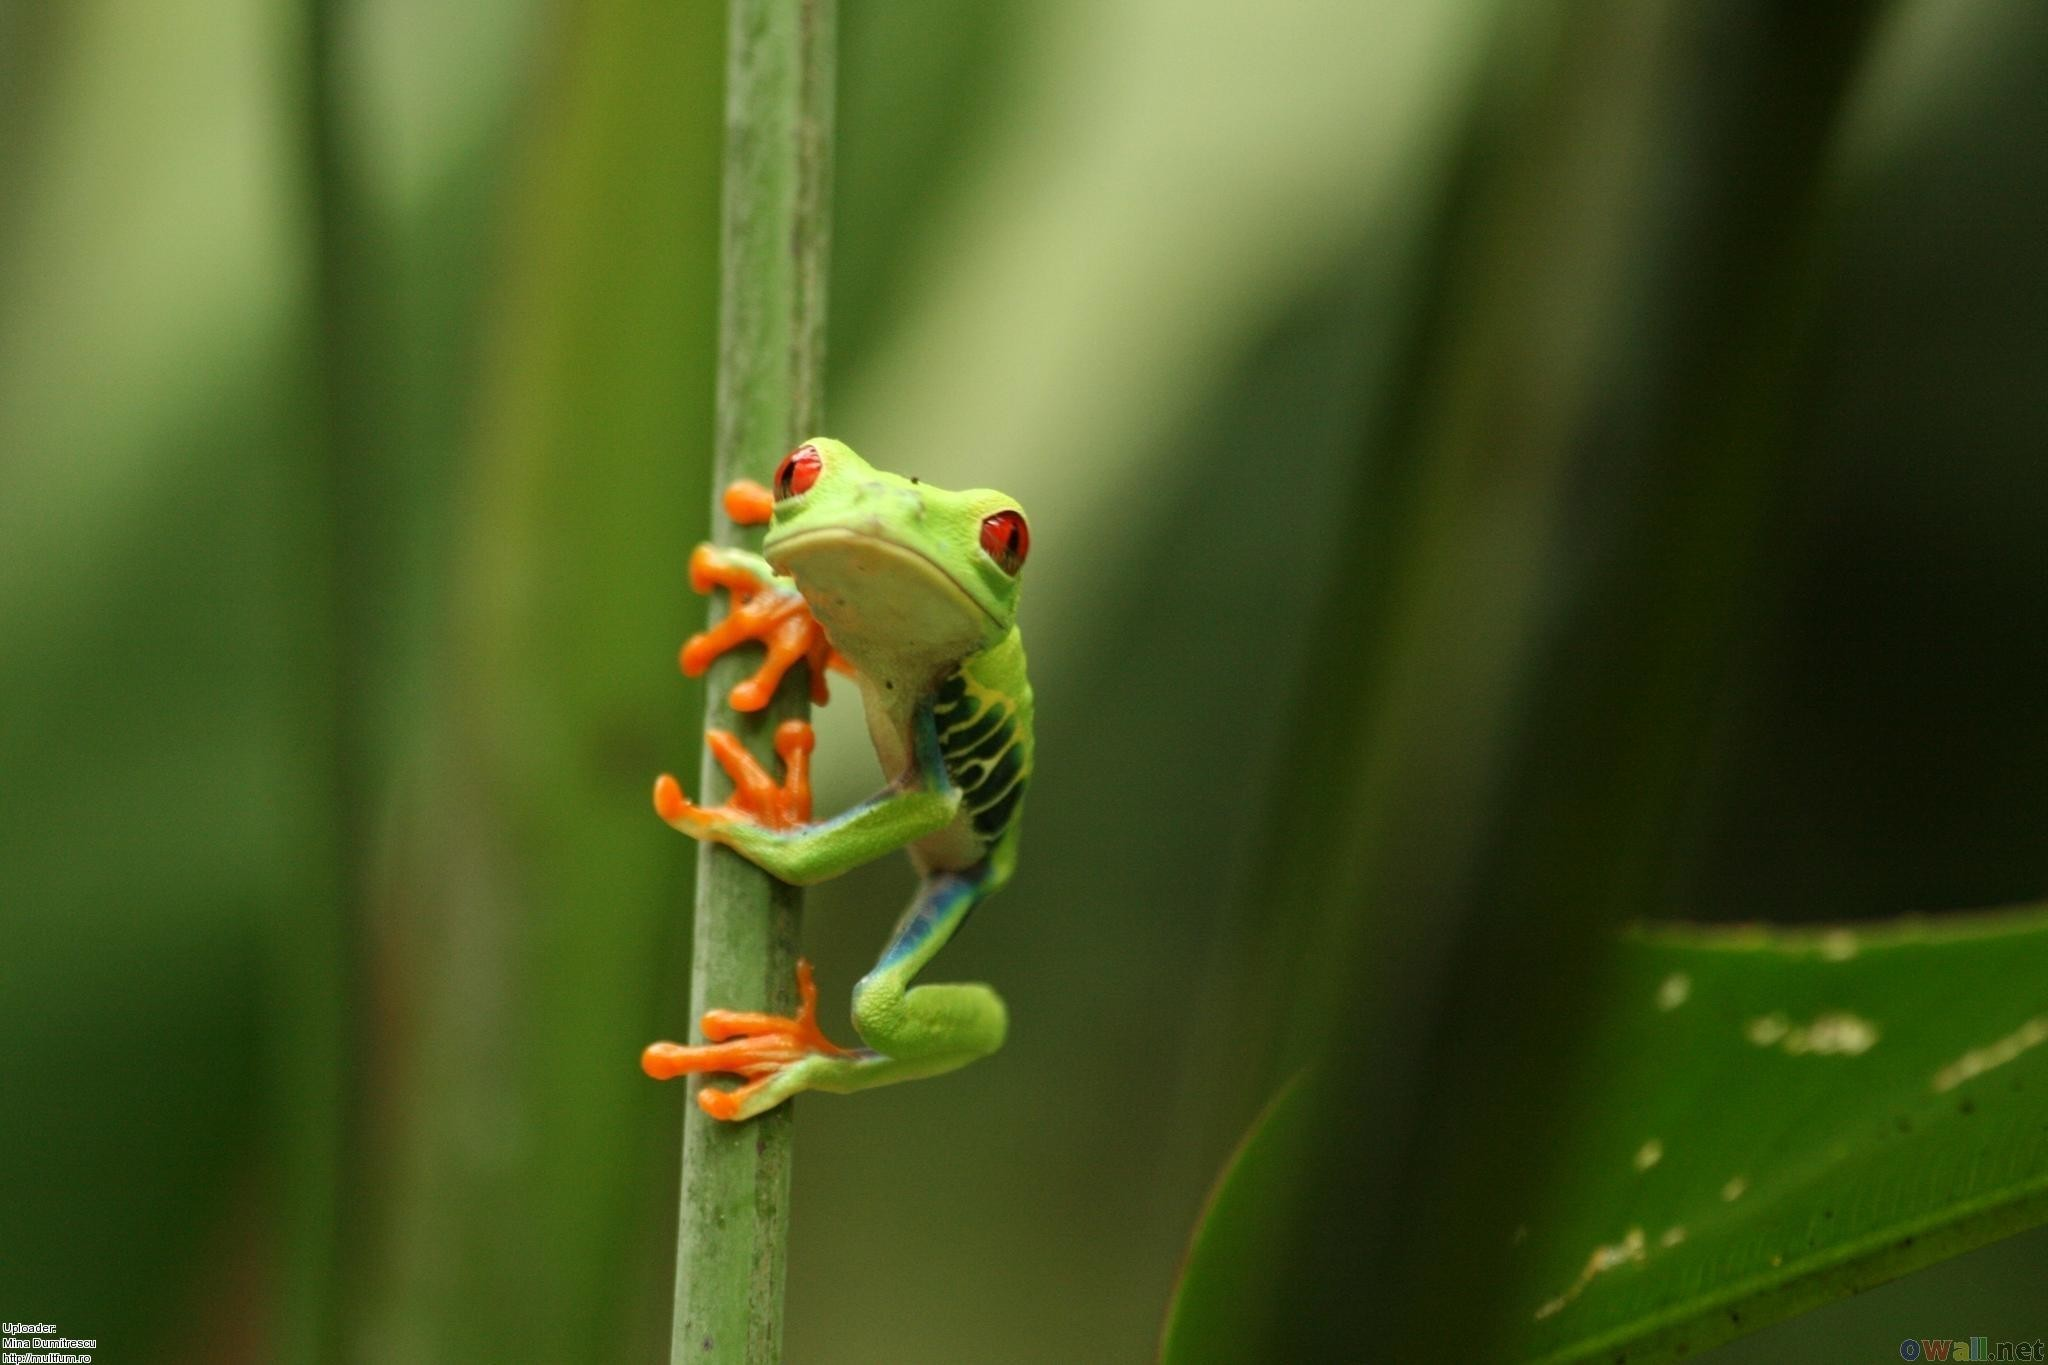 2048x1365 HD Finding That Frog Wallpaper